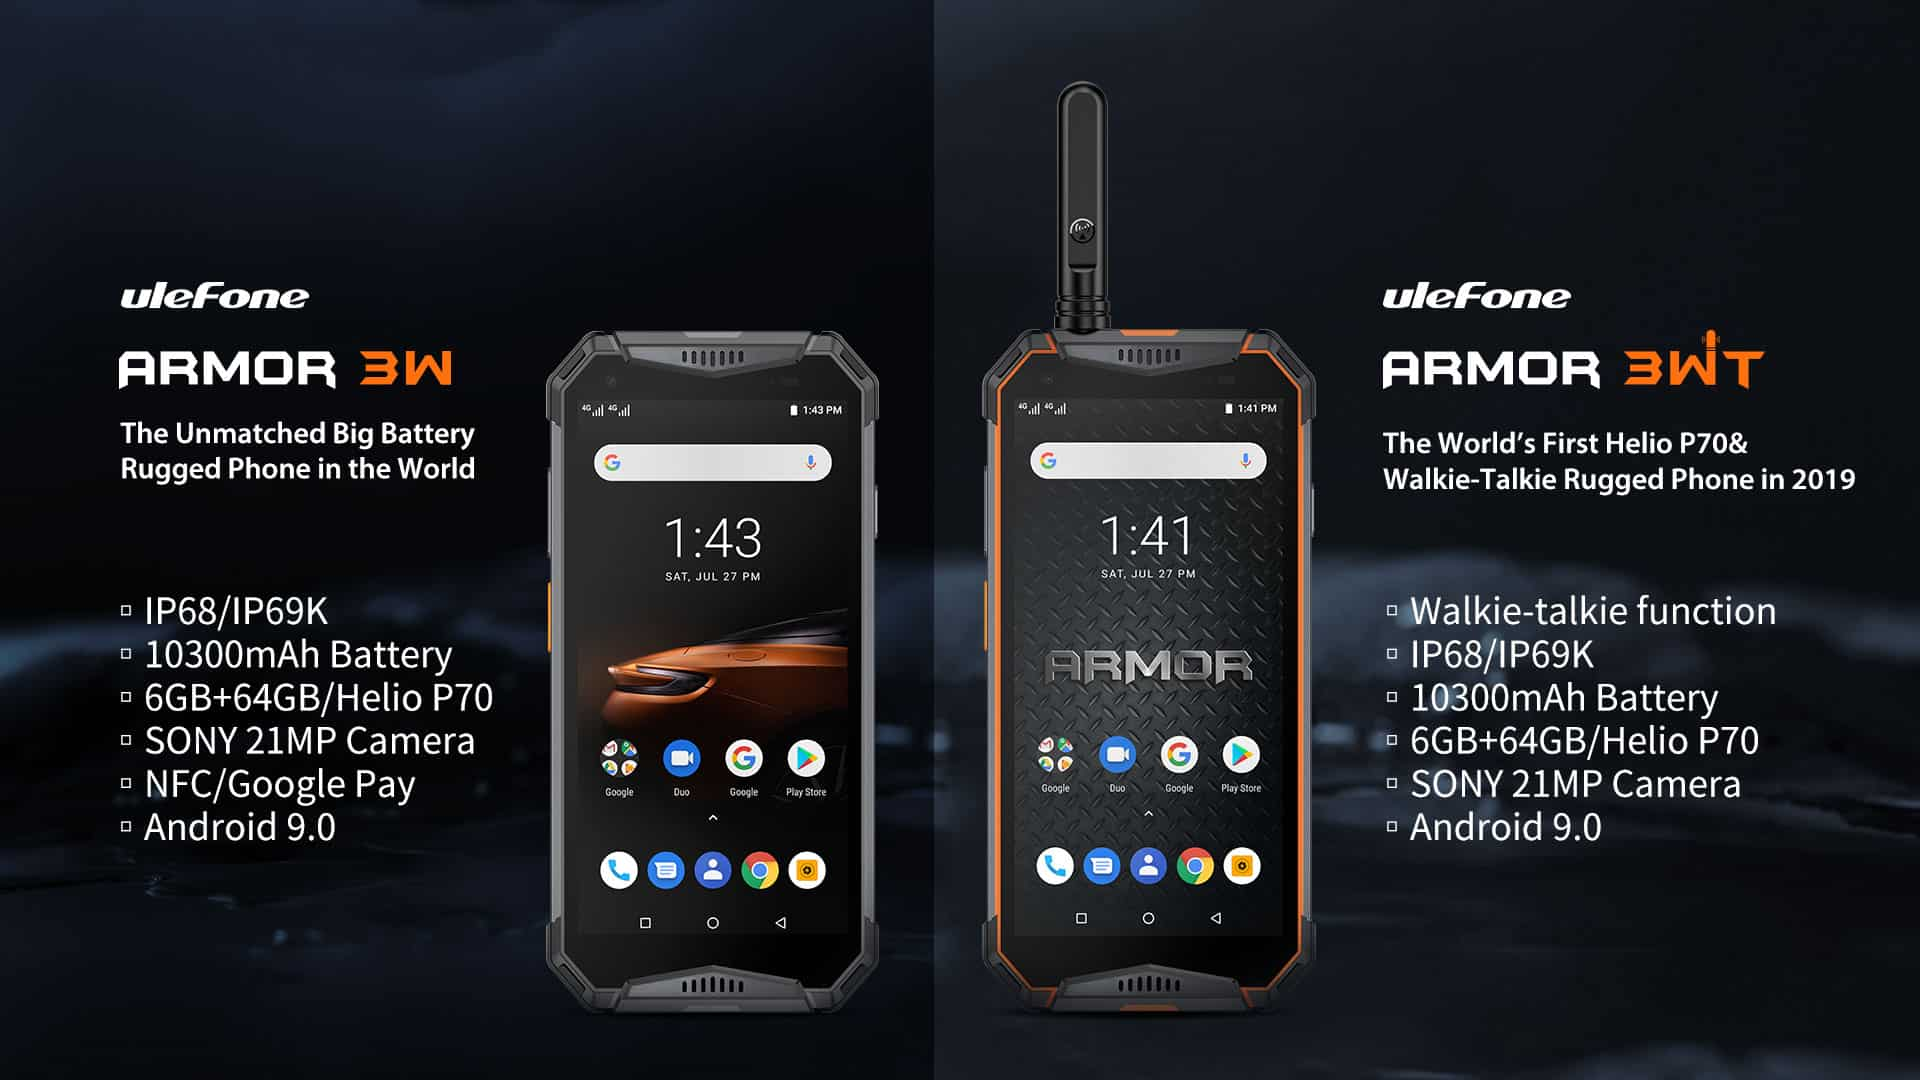 Ulefone Armor 3W and Armor 3WT image 5